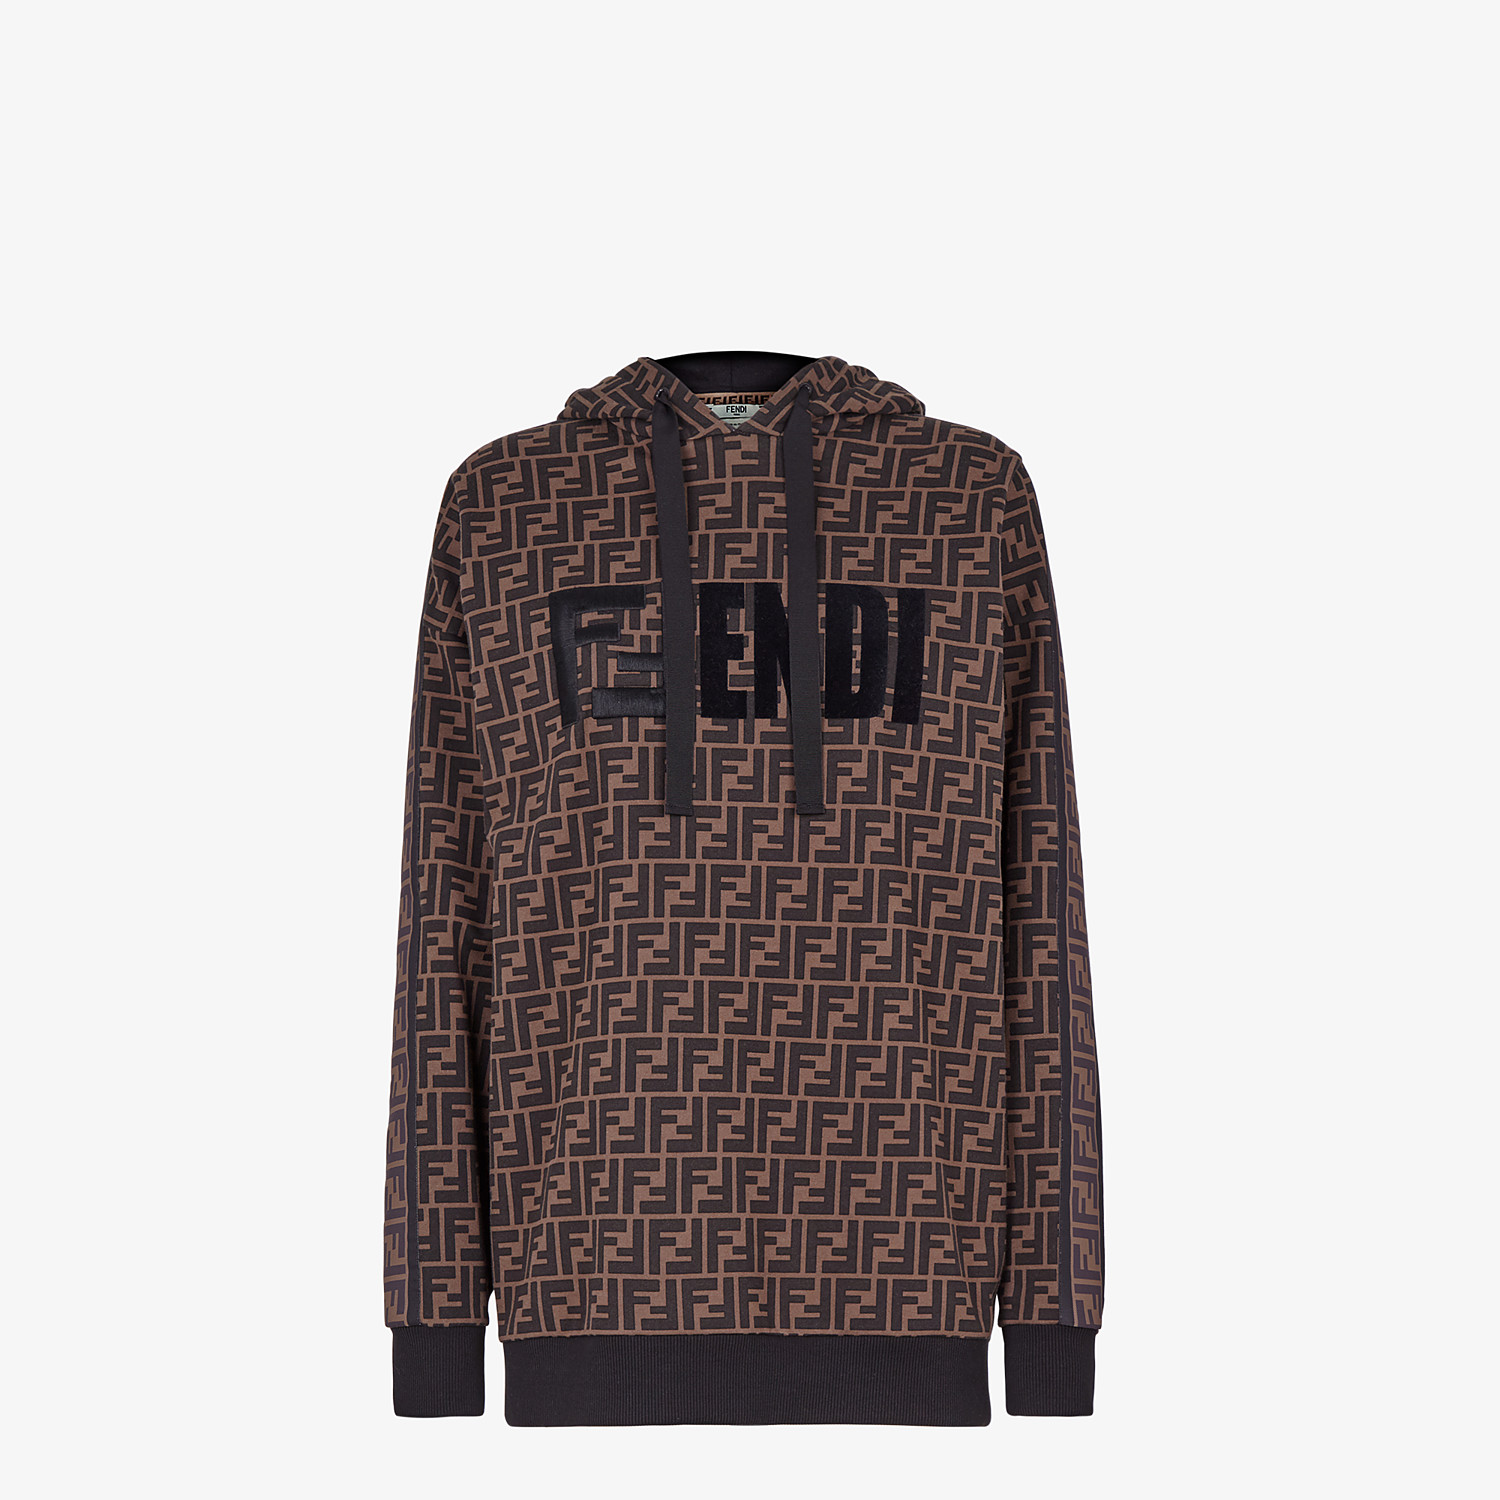 FENDI SWEATSHIRT - Brown jersey sweatshirt - view 1 detail